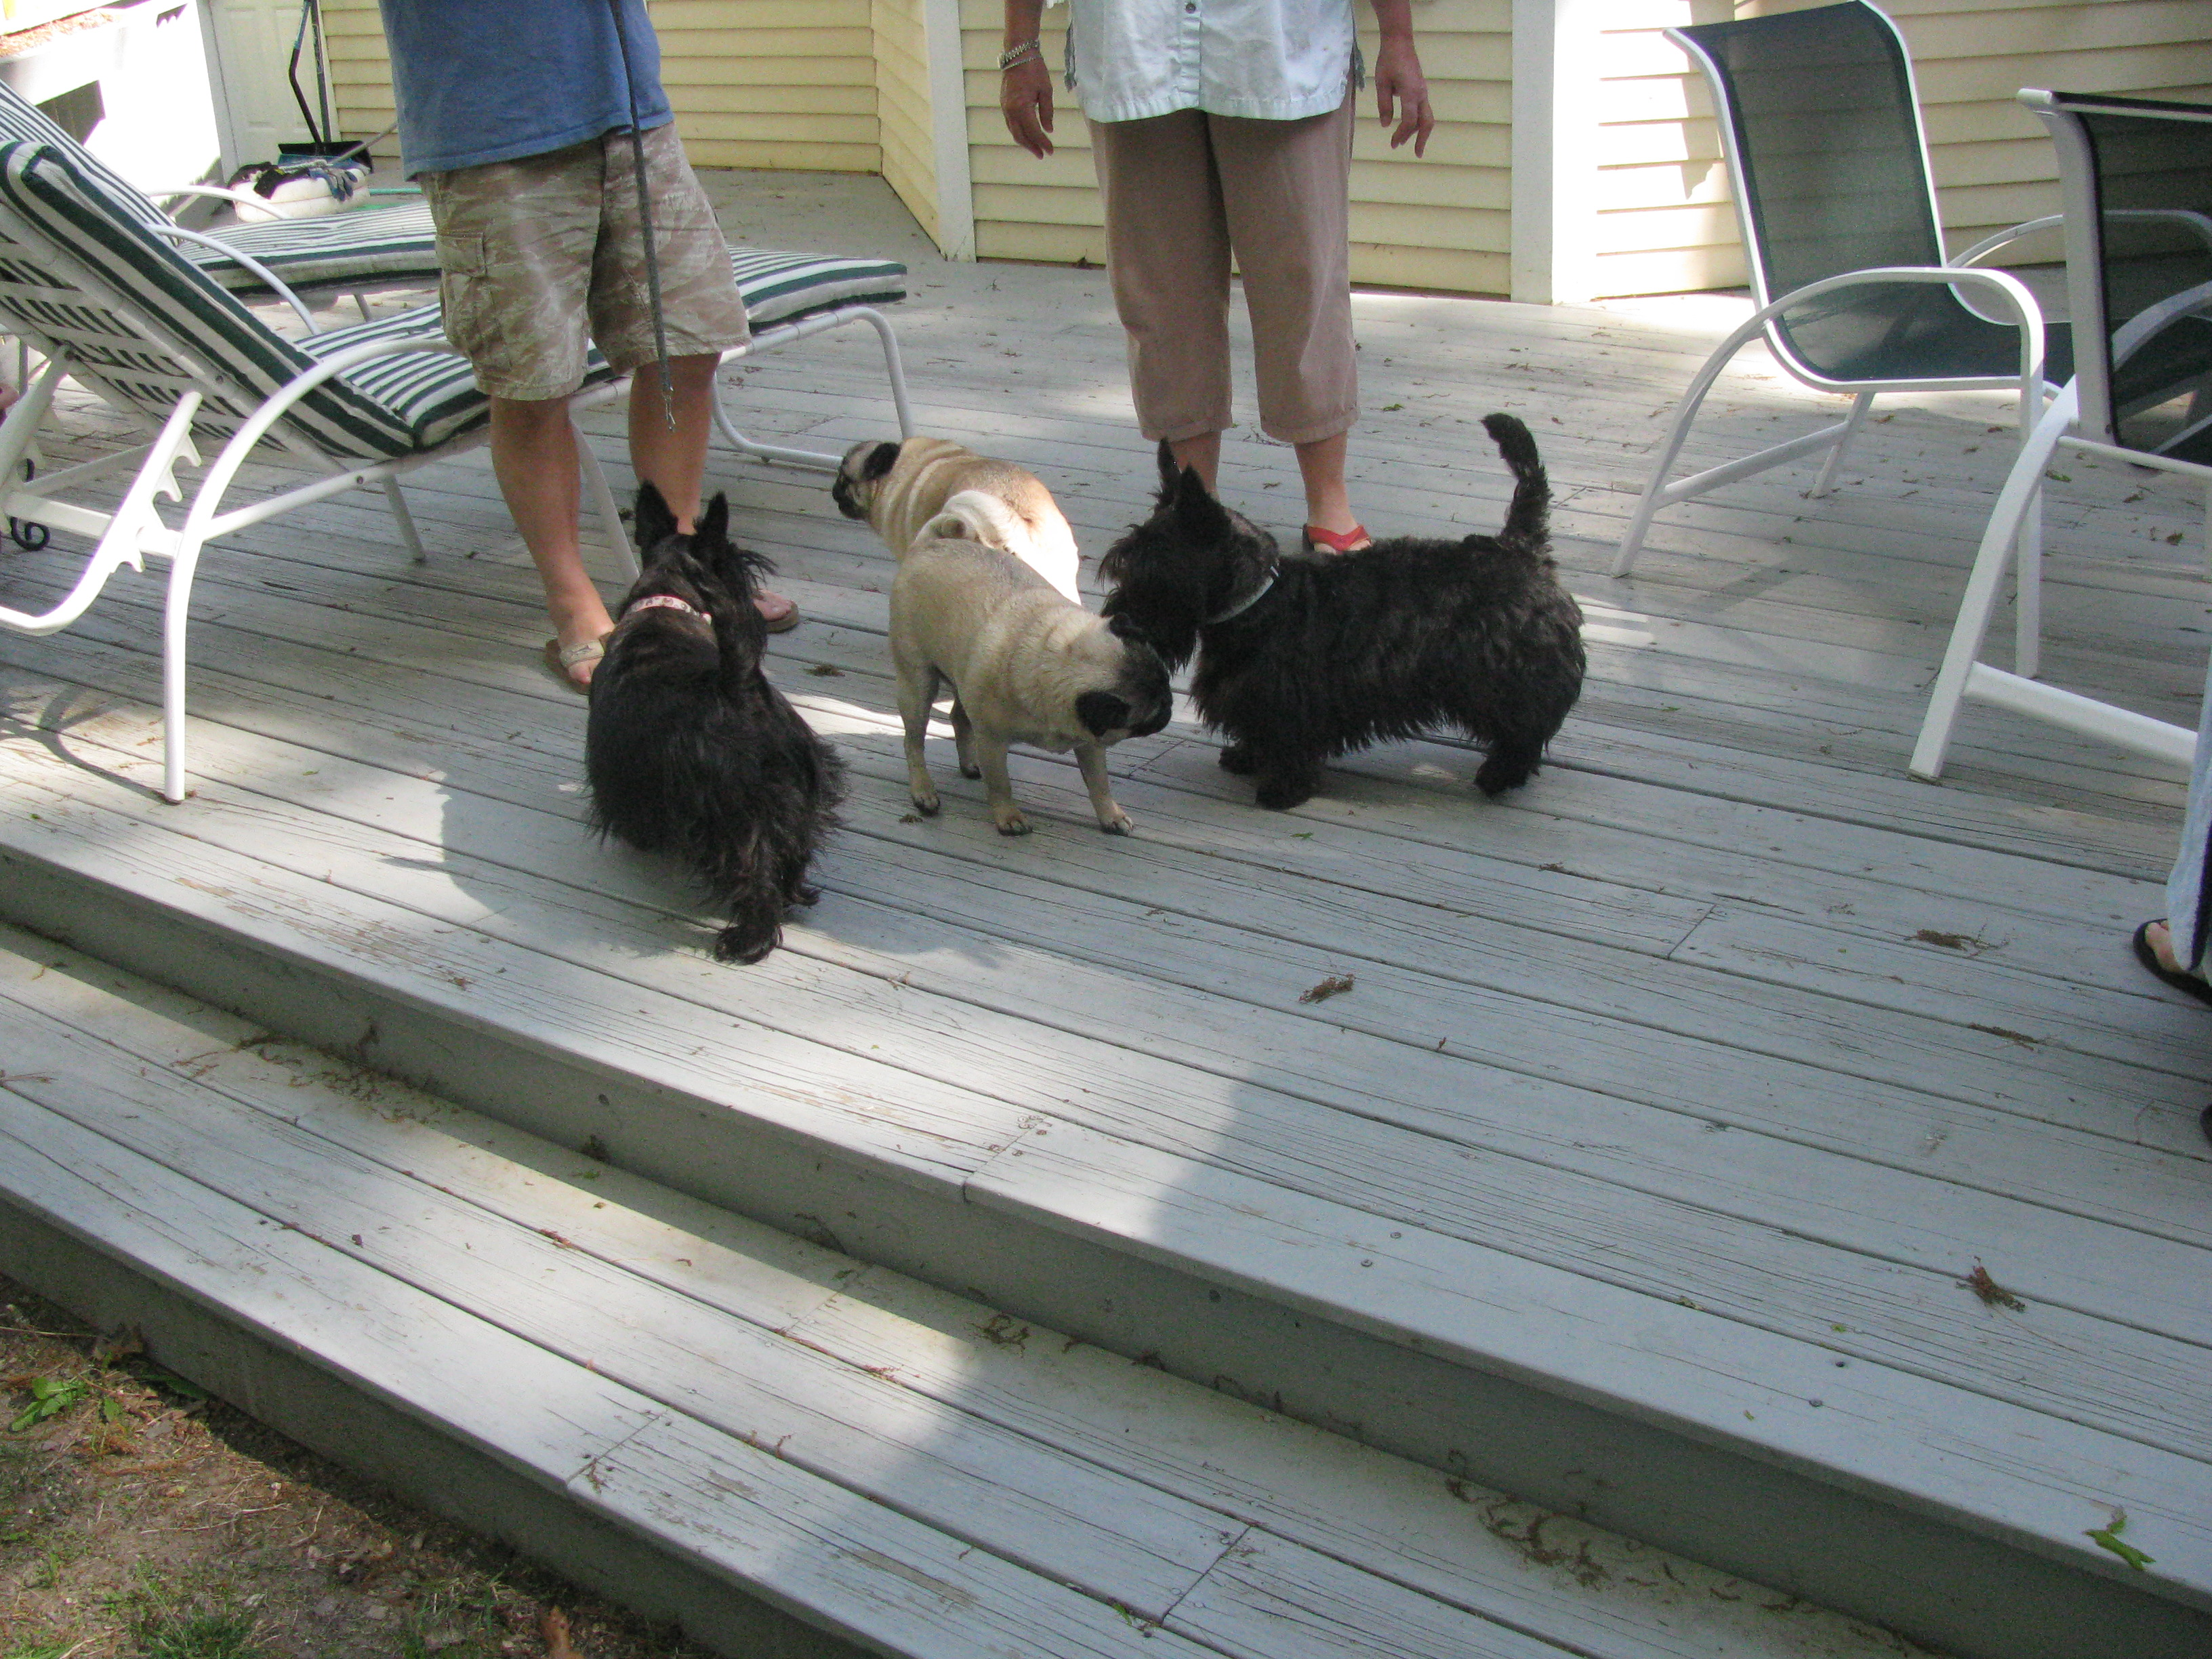 You can see the pug/Scottie interaction here. This is before it became ugly.